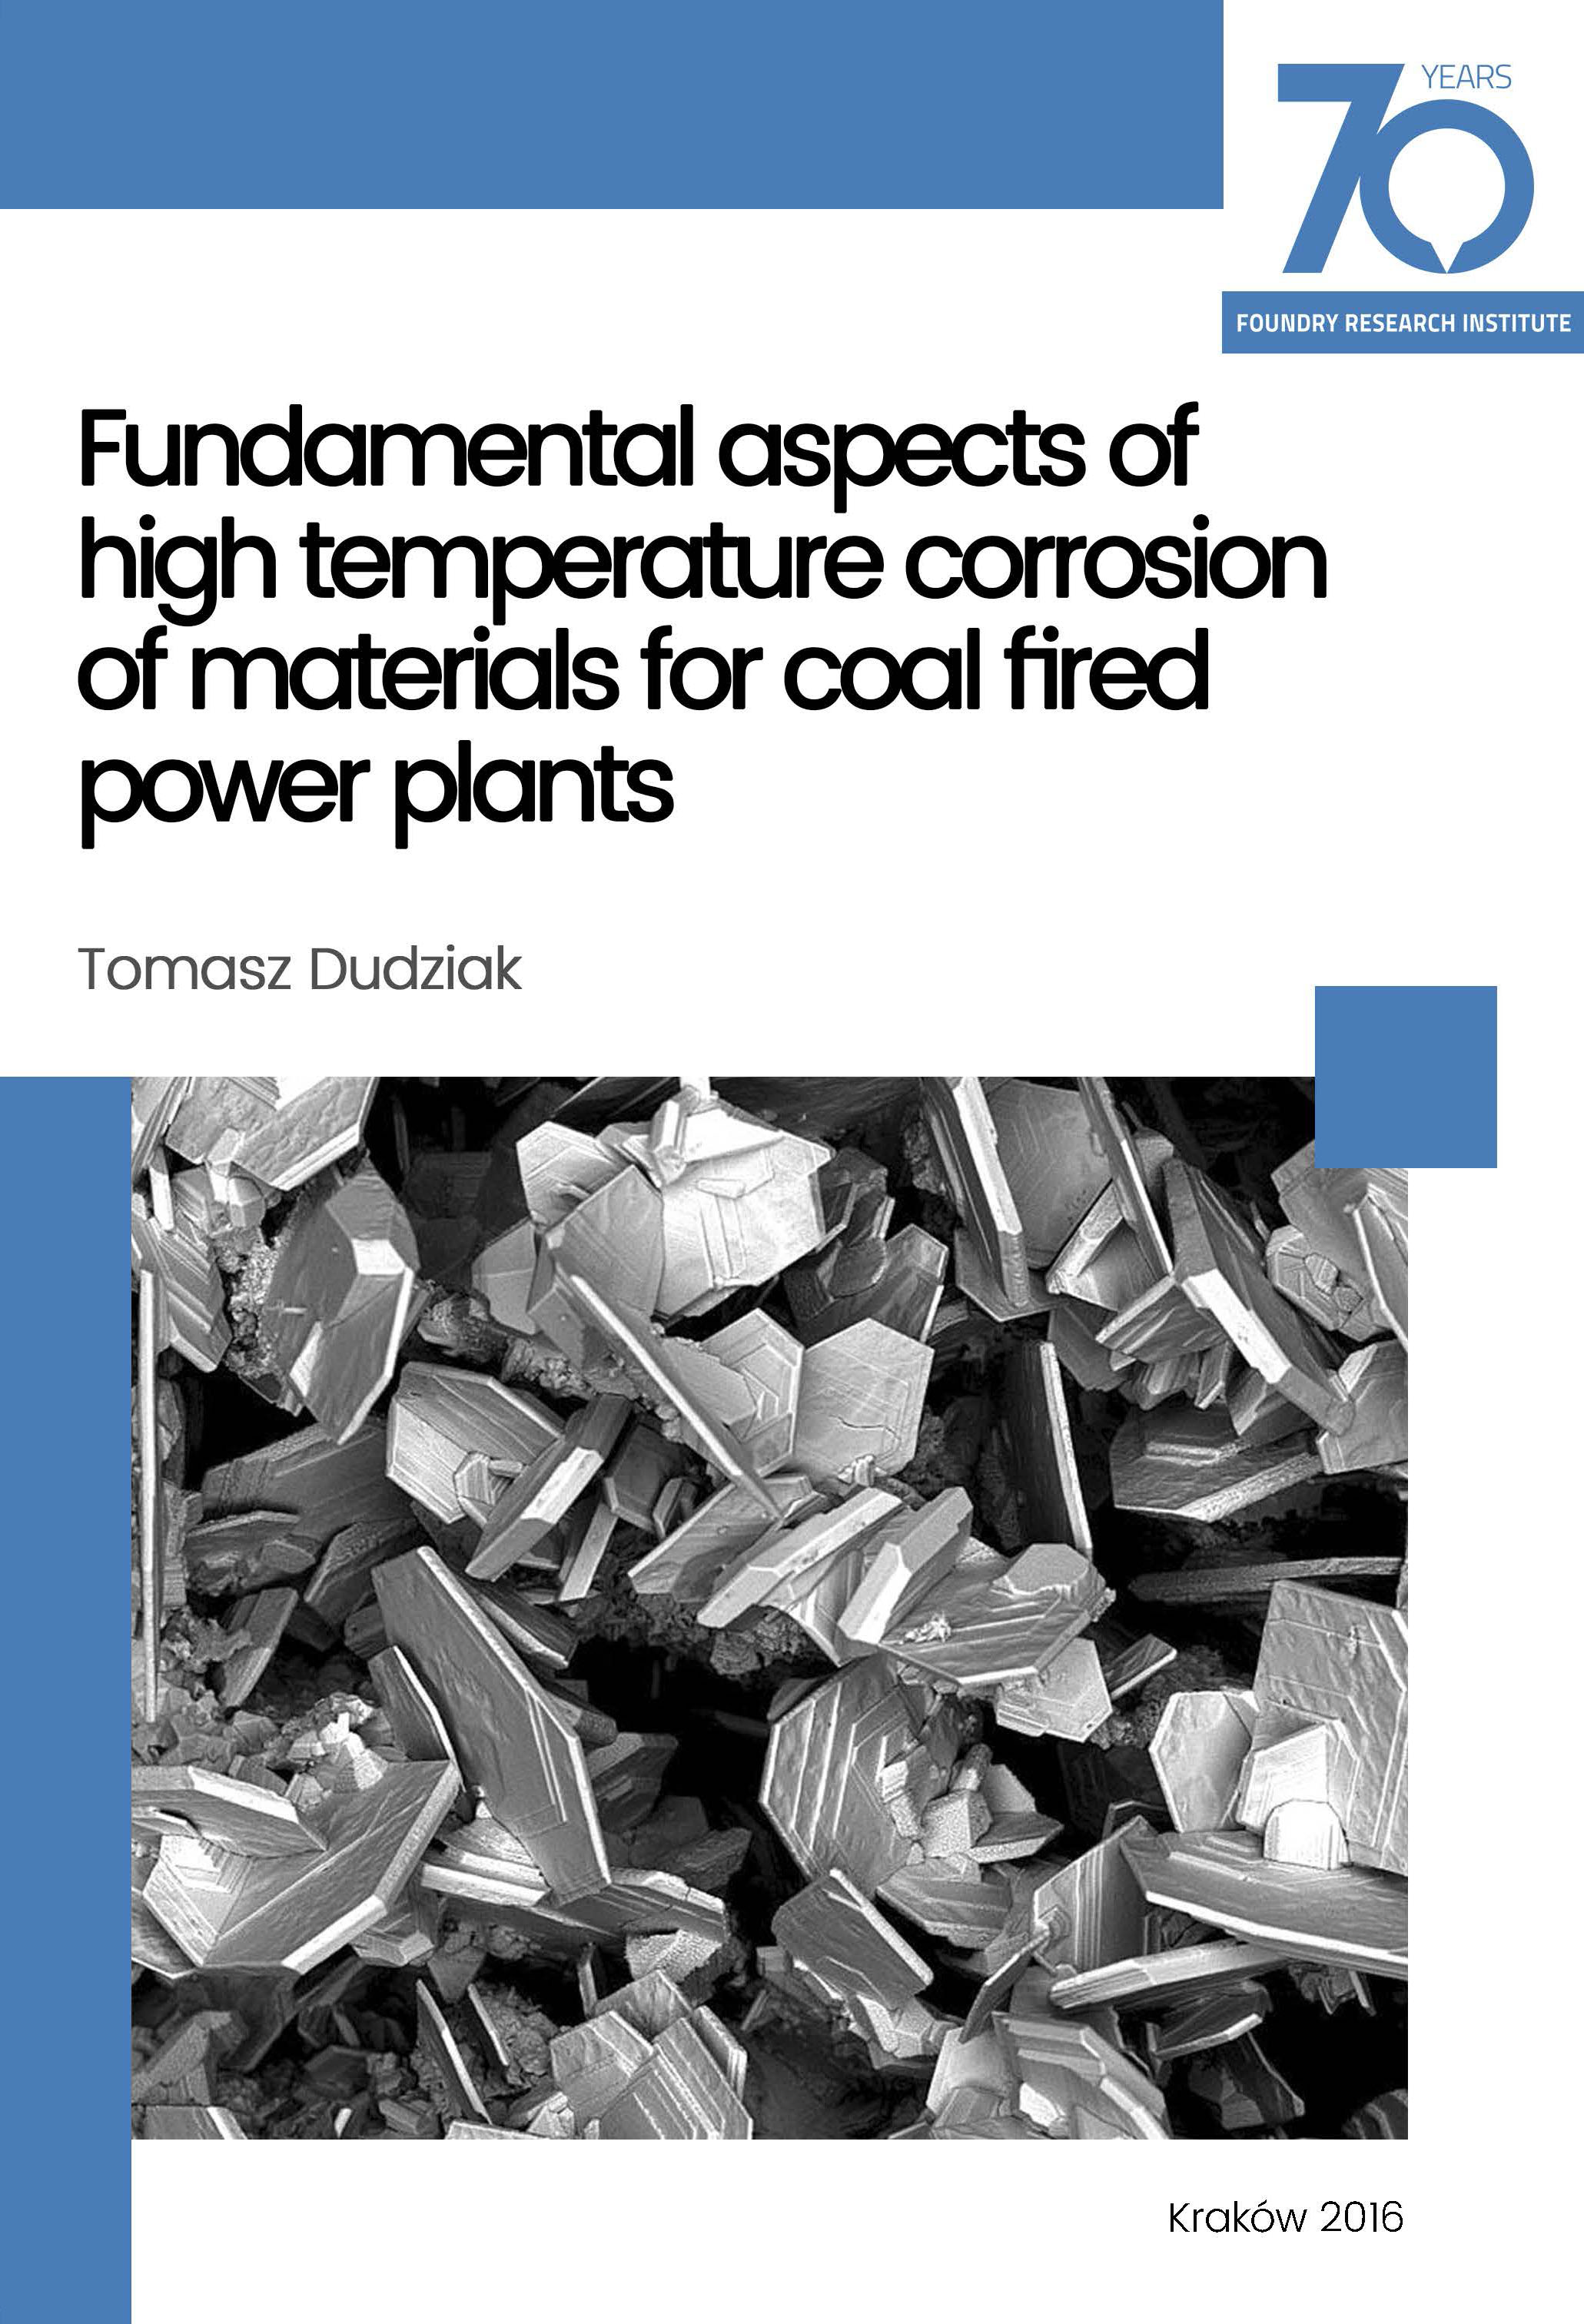 Fundamental aspects of high temperature corrosion of materials for coal fired power plants